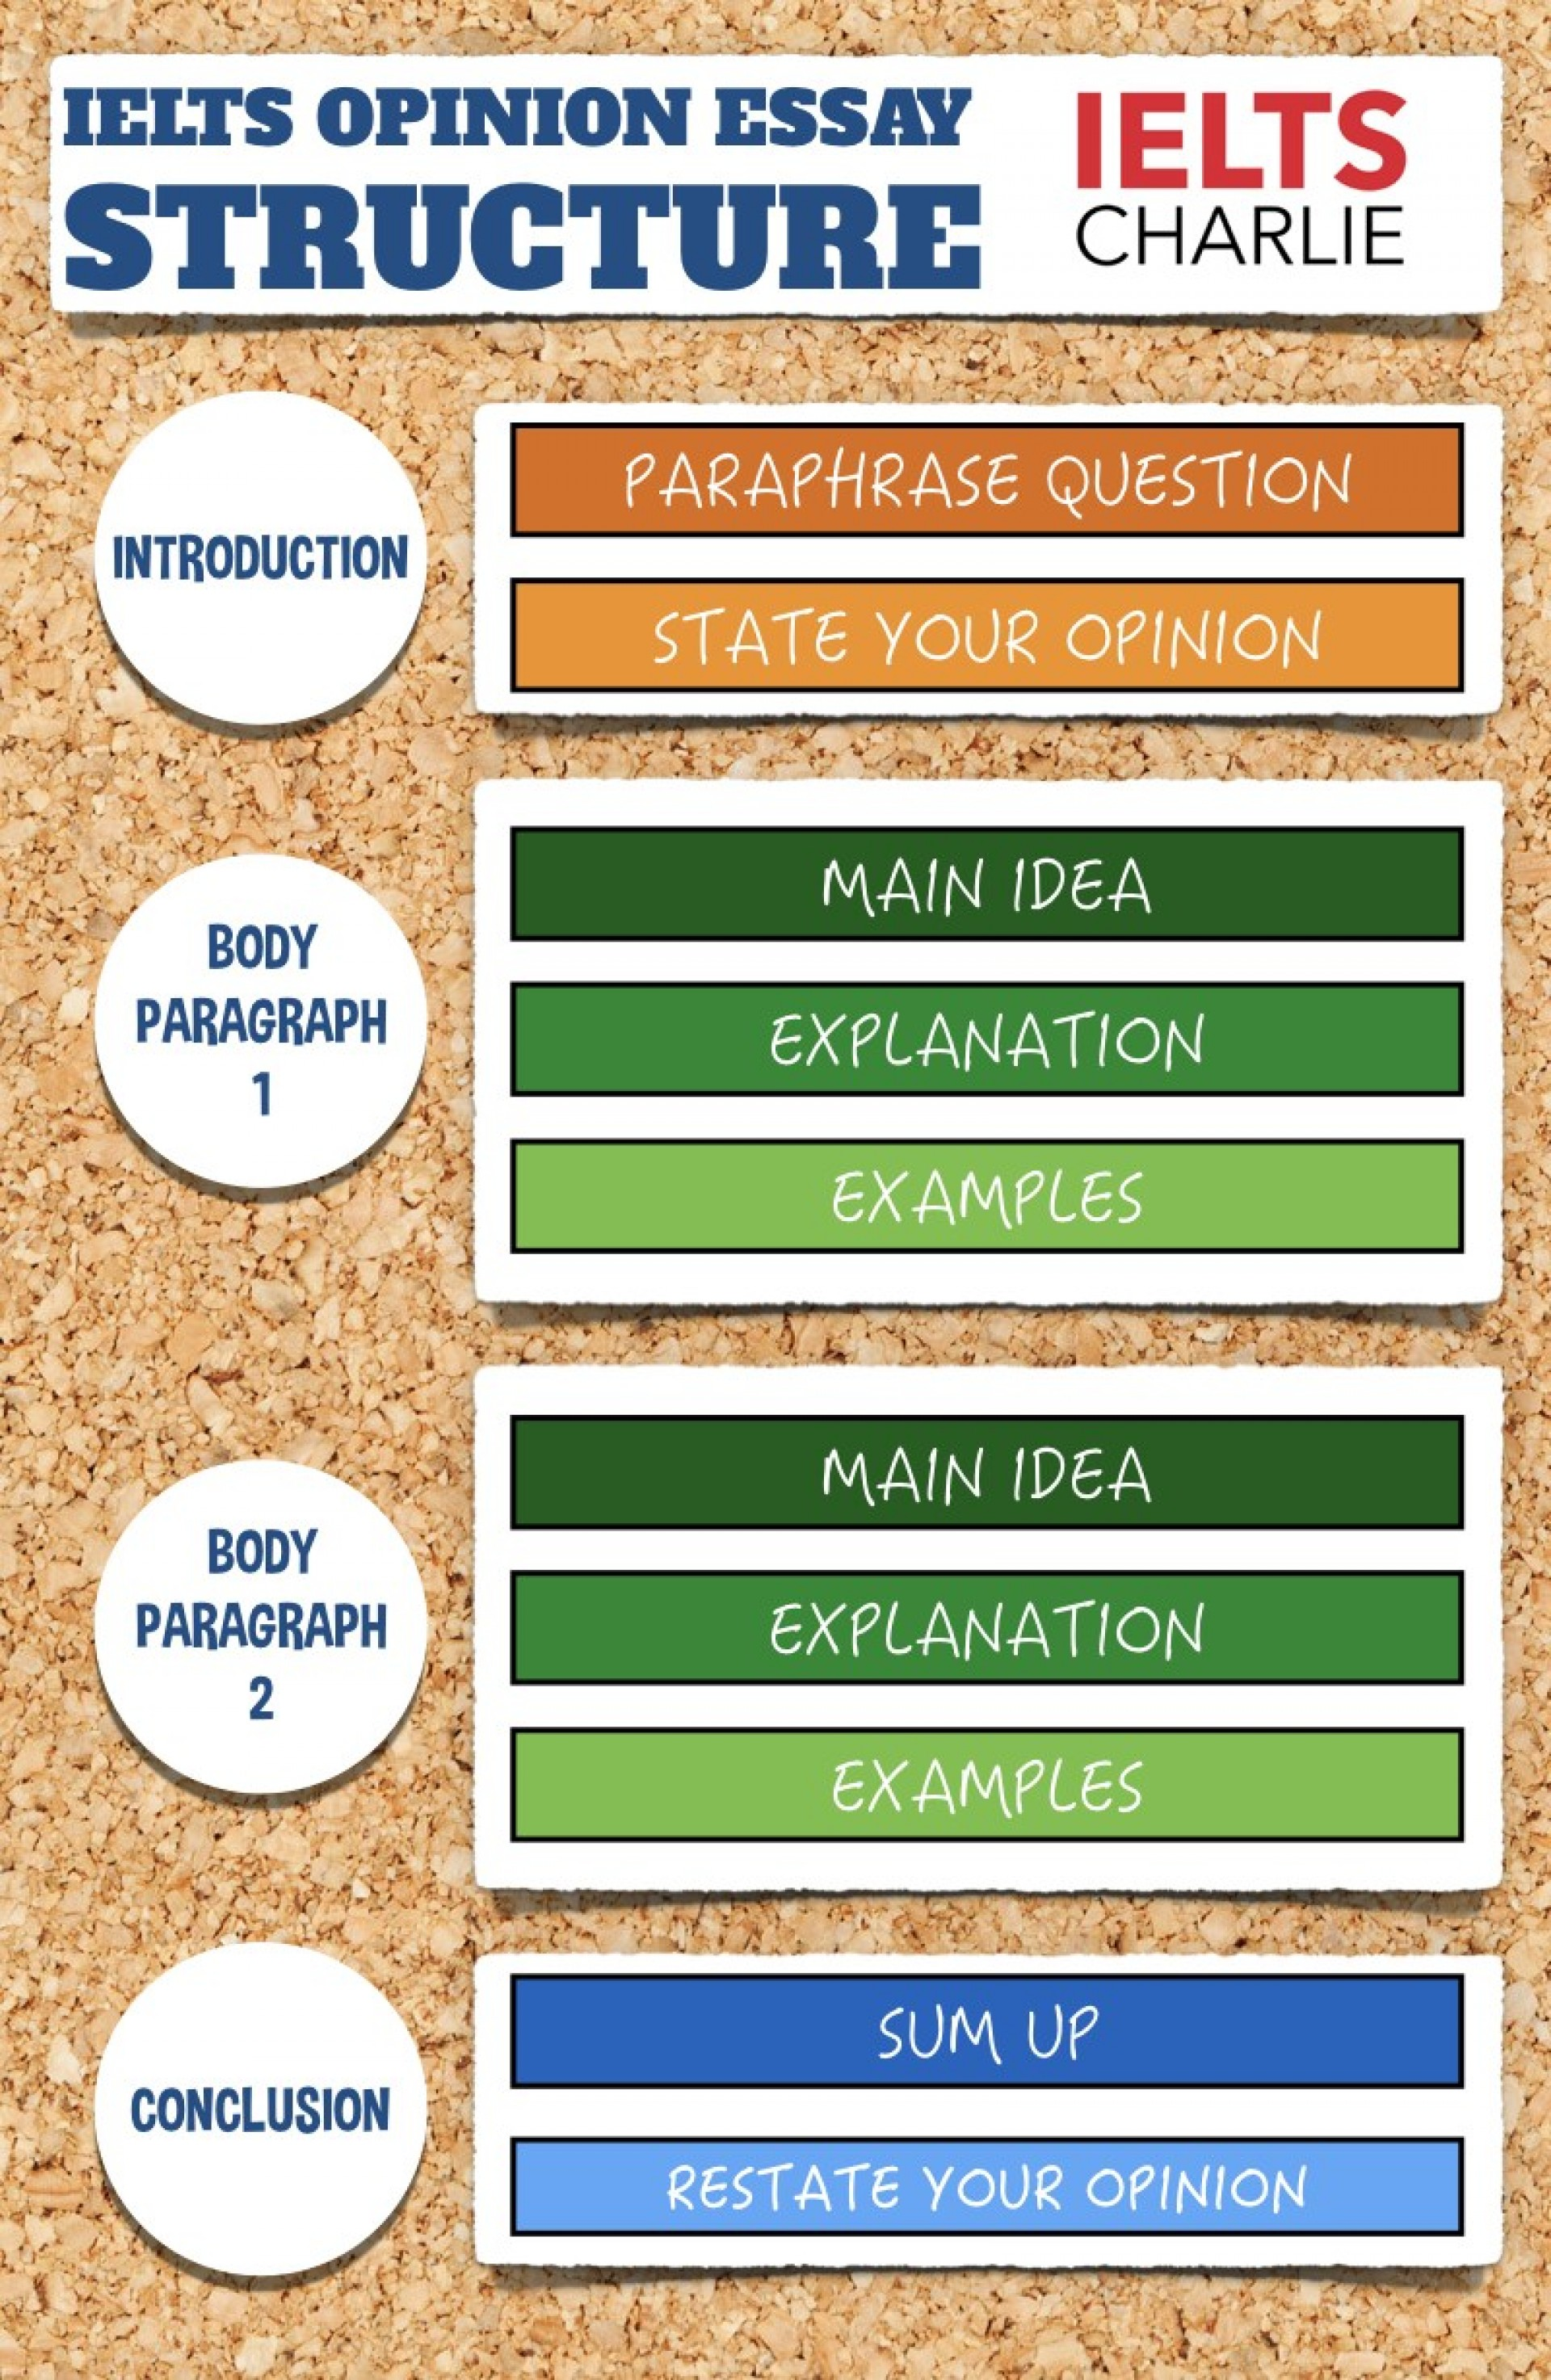 014 Essay Structure Types Essaystructure Incredible Pdf Organizational 1920